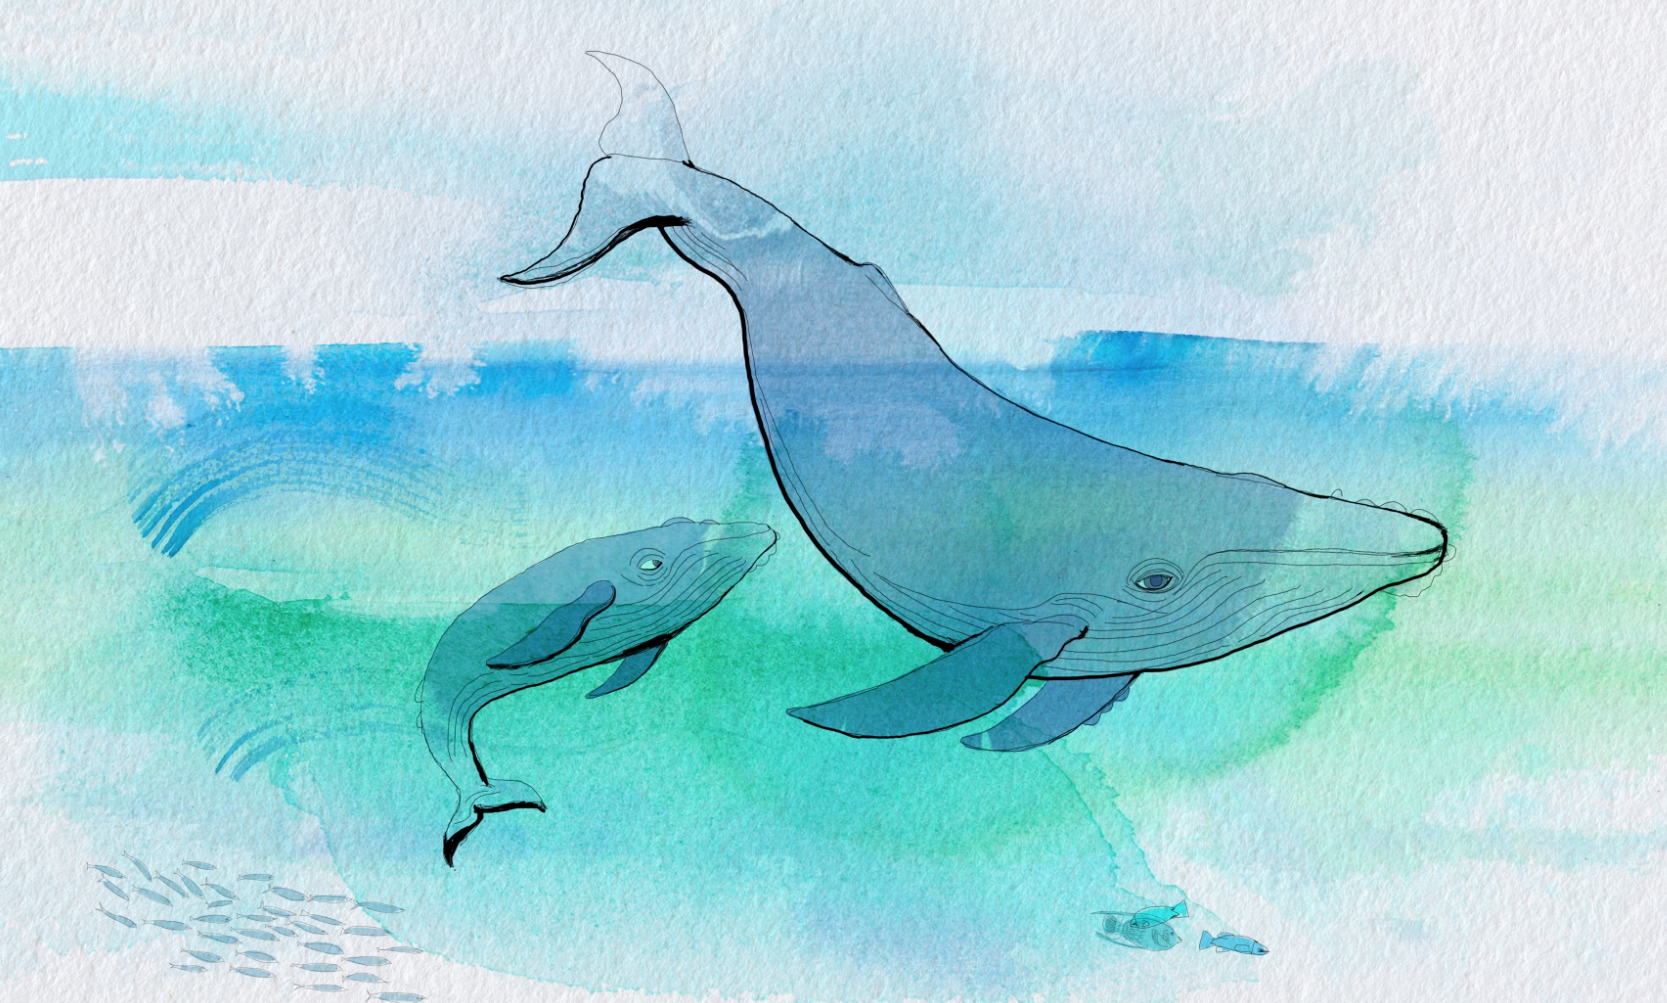 whales extintion, sea and pollution, illustration watercolor